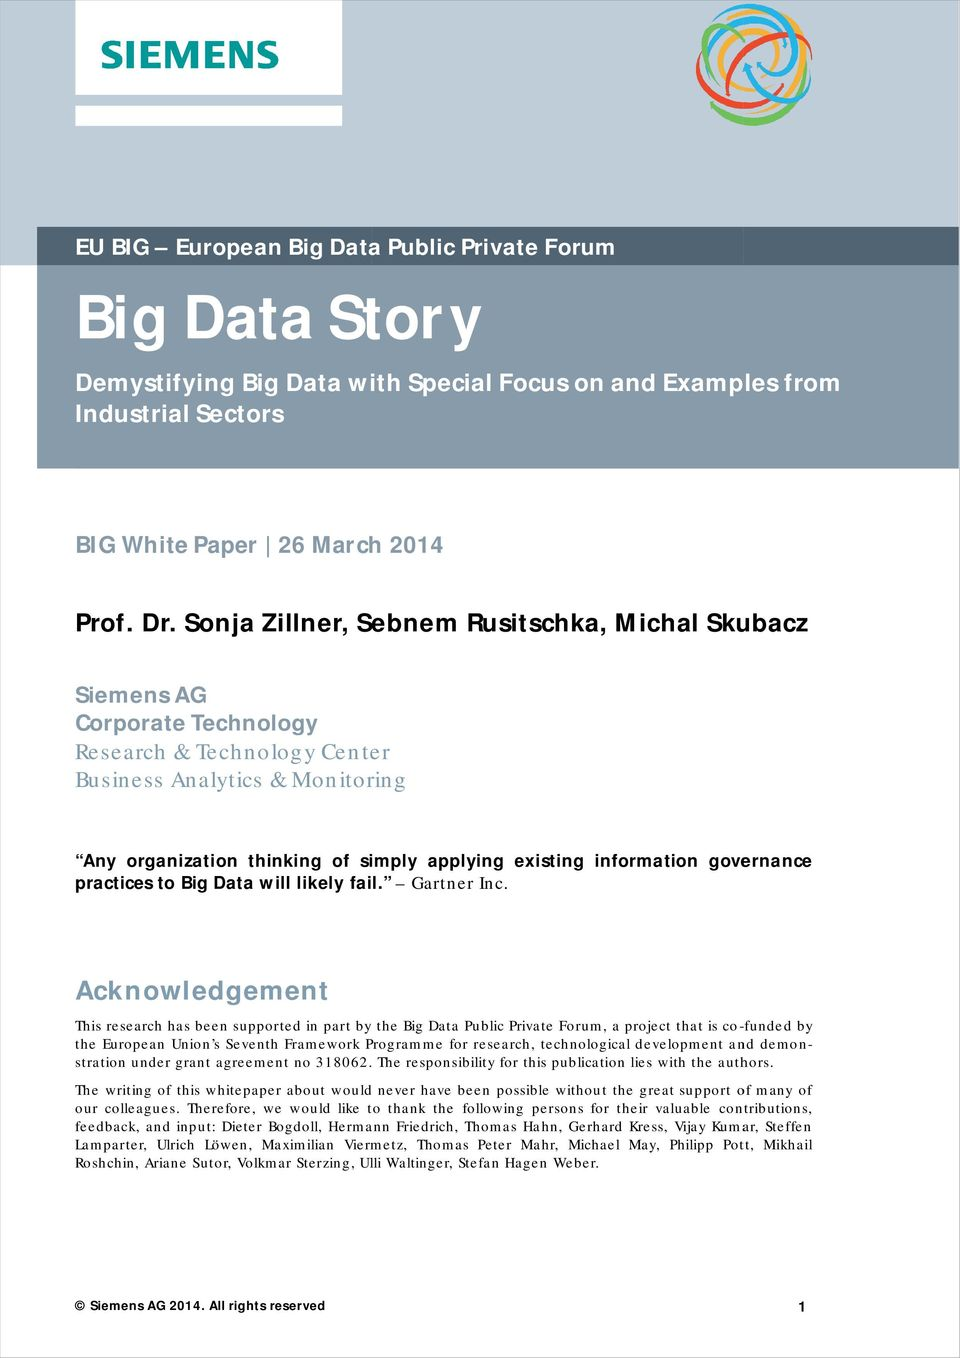 information governance practices to Big Data will likely fail. Gartner Inc.